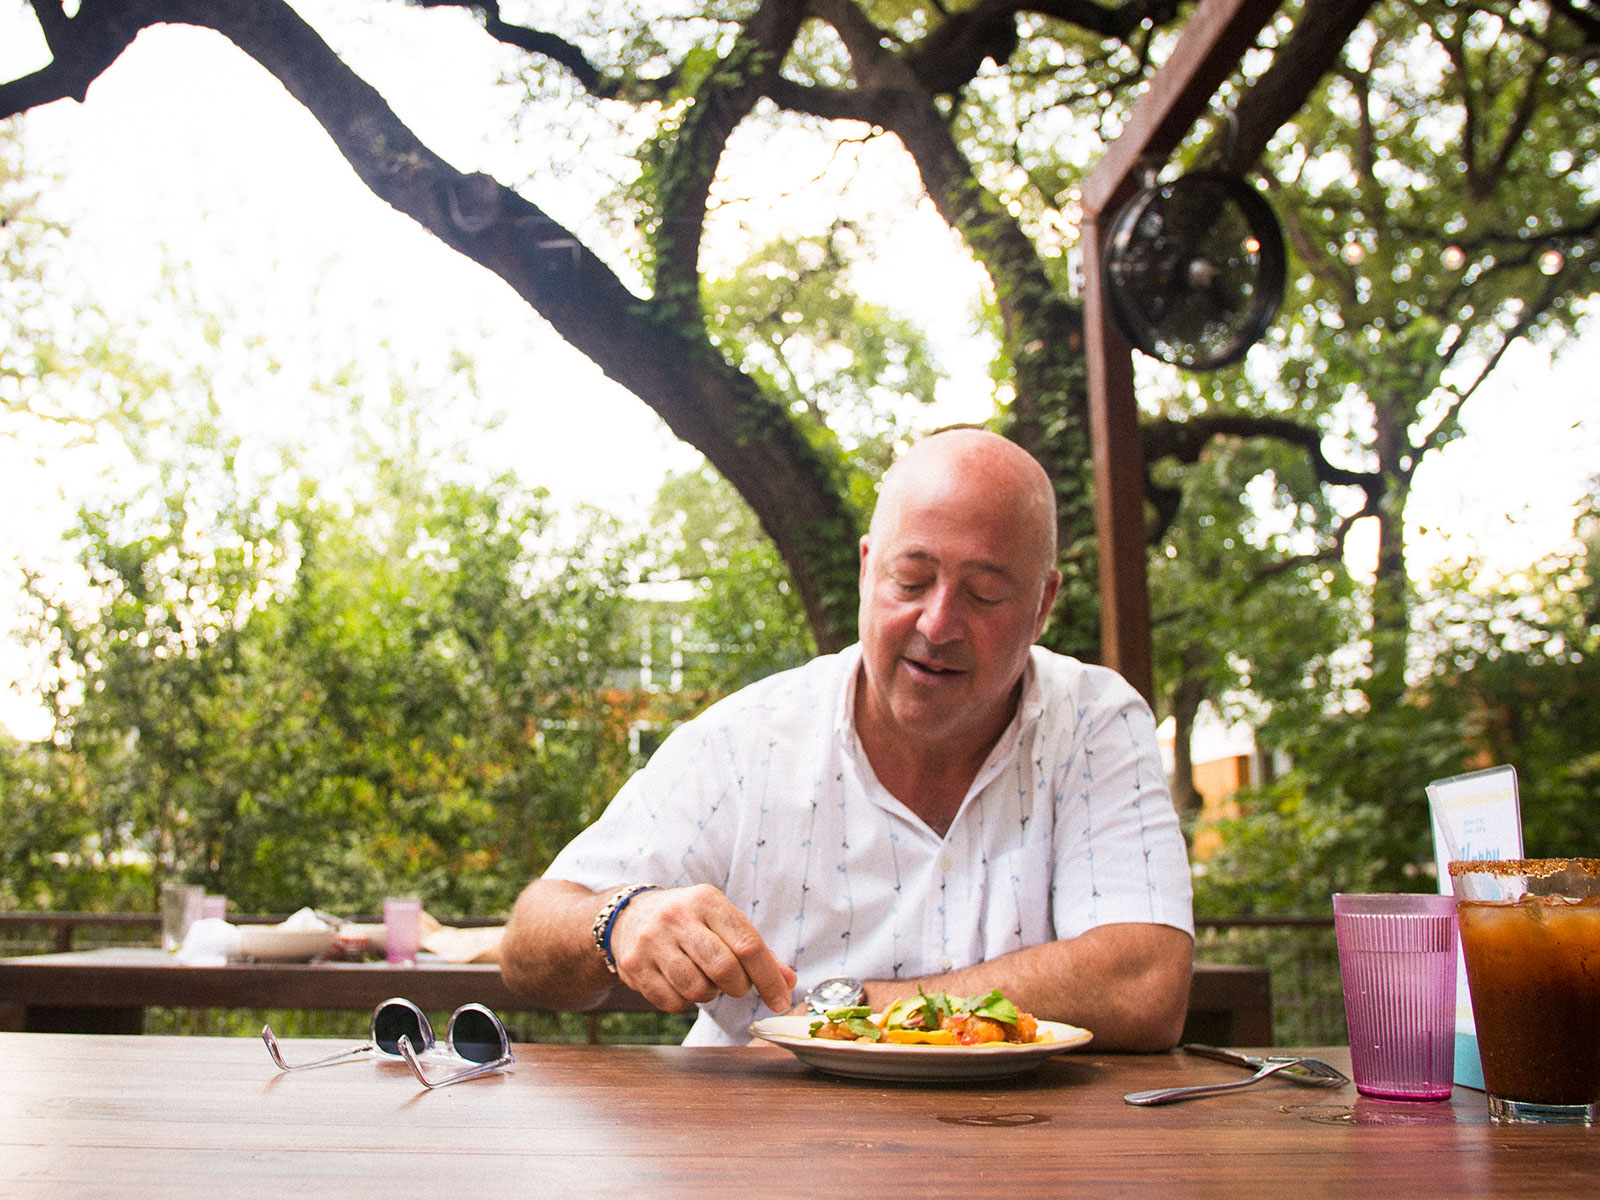 Where to Eat Chicken al Carbon and Breakfast Tacos in Austin, According to Andrew Zimmern